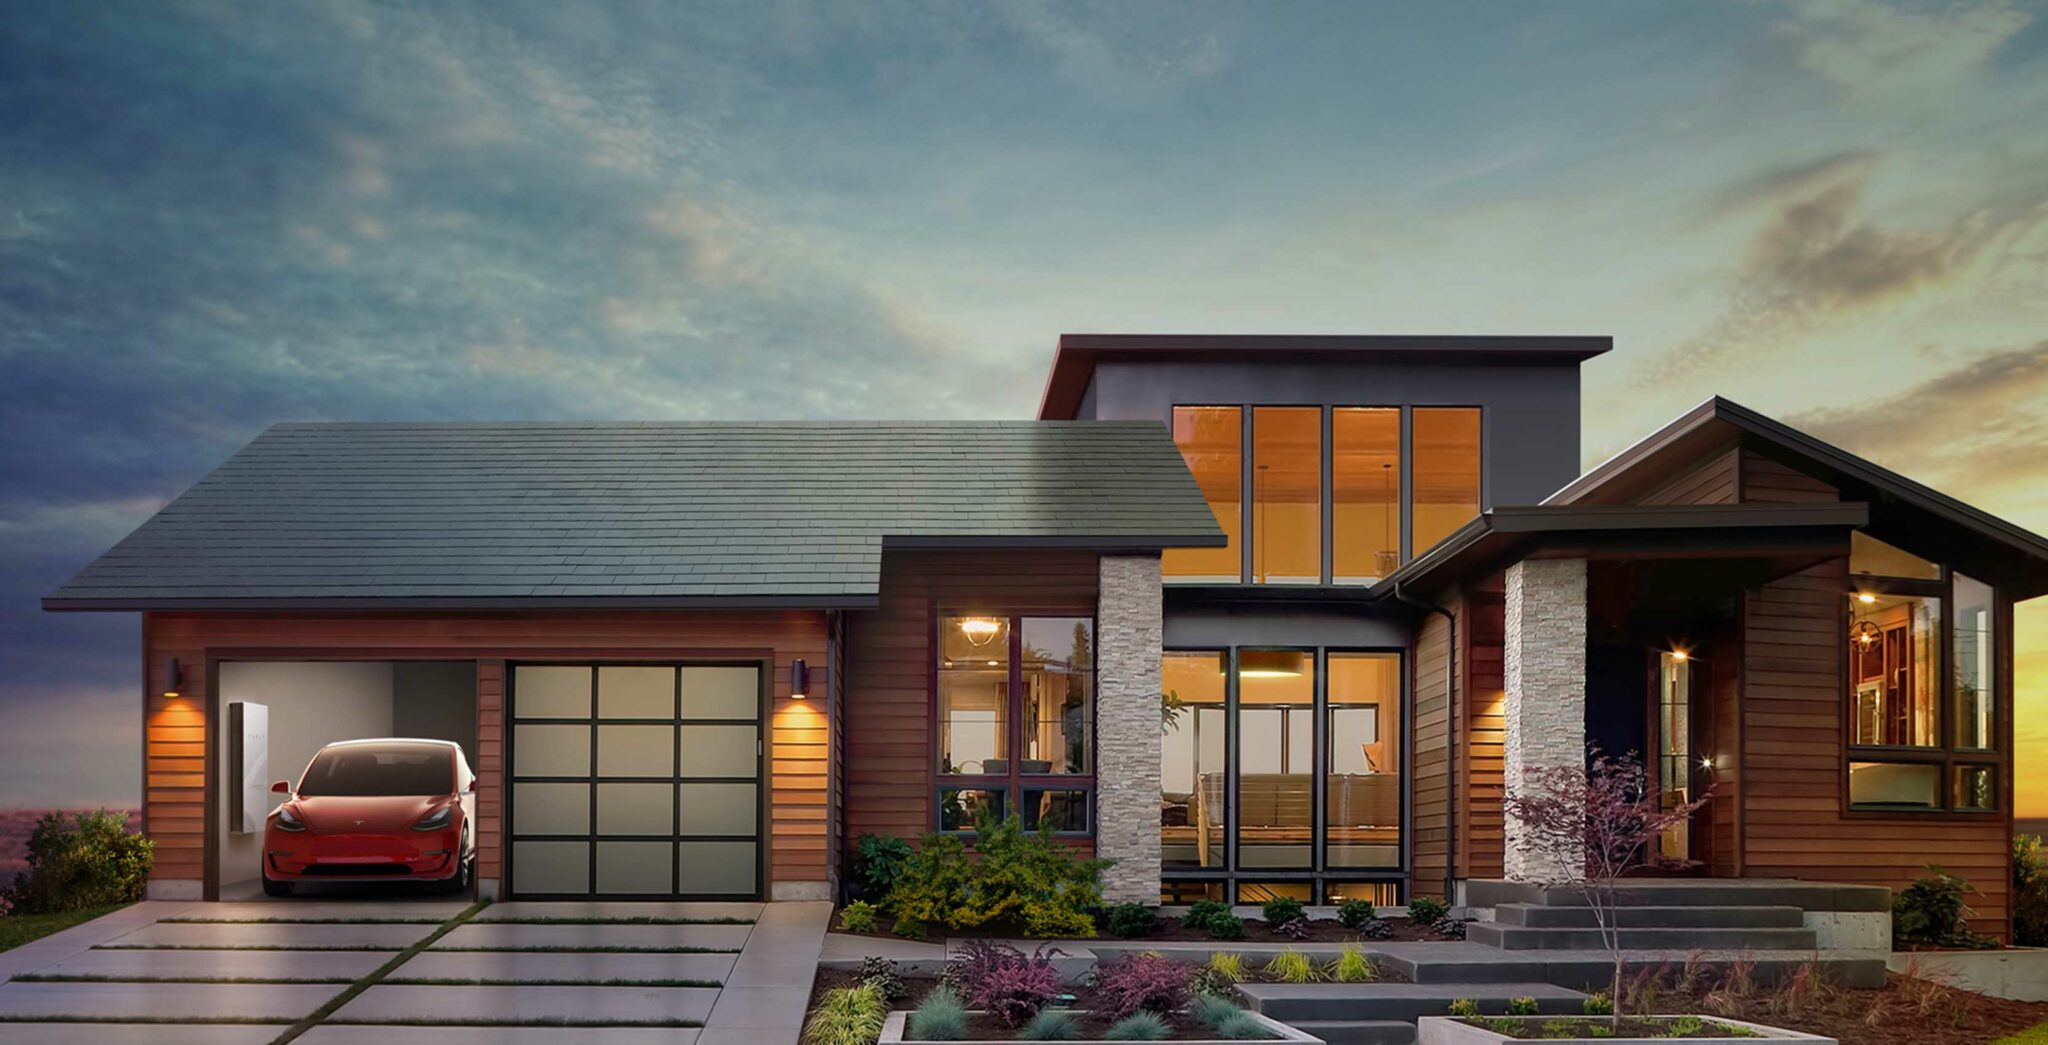 Tesla Solar installations to include a Powerwall by default in the future